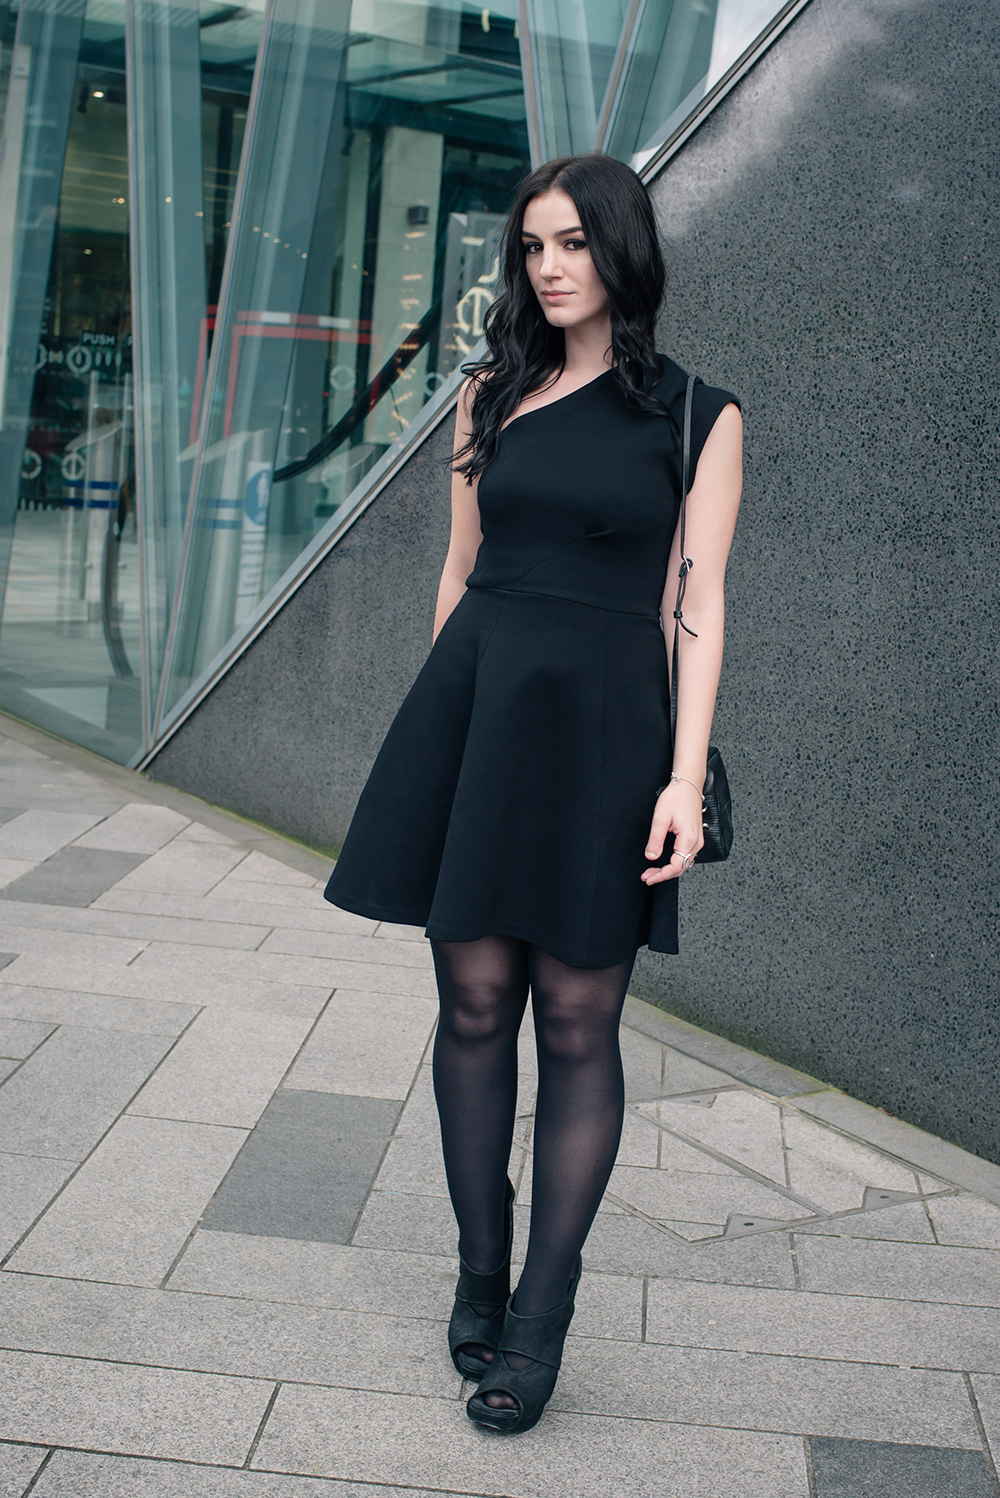 Fashion blogger Stephanie of FAIIINT wearing Reiss one shoulder asymmetric Keria dress with Rick Owens wave wedge shoes. All black outfit.